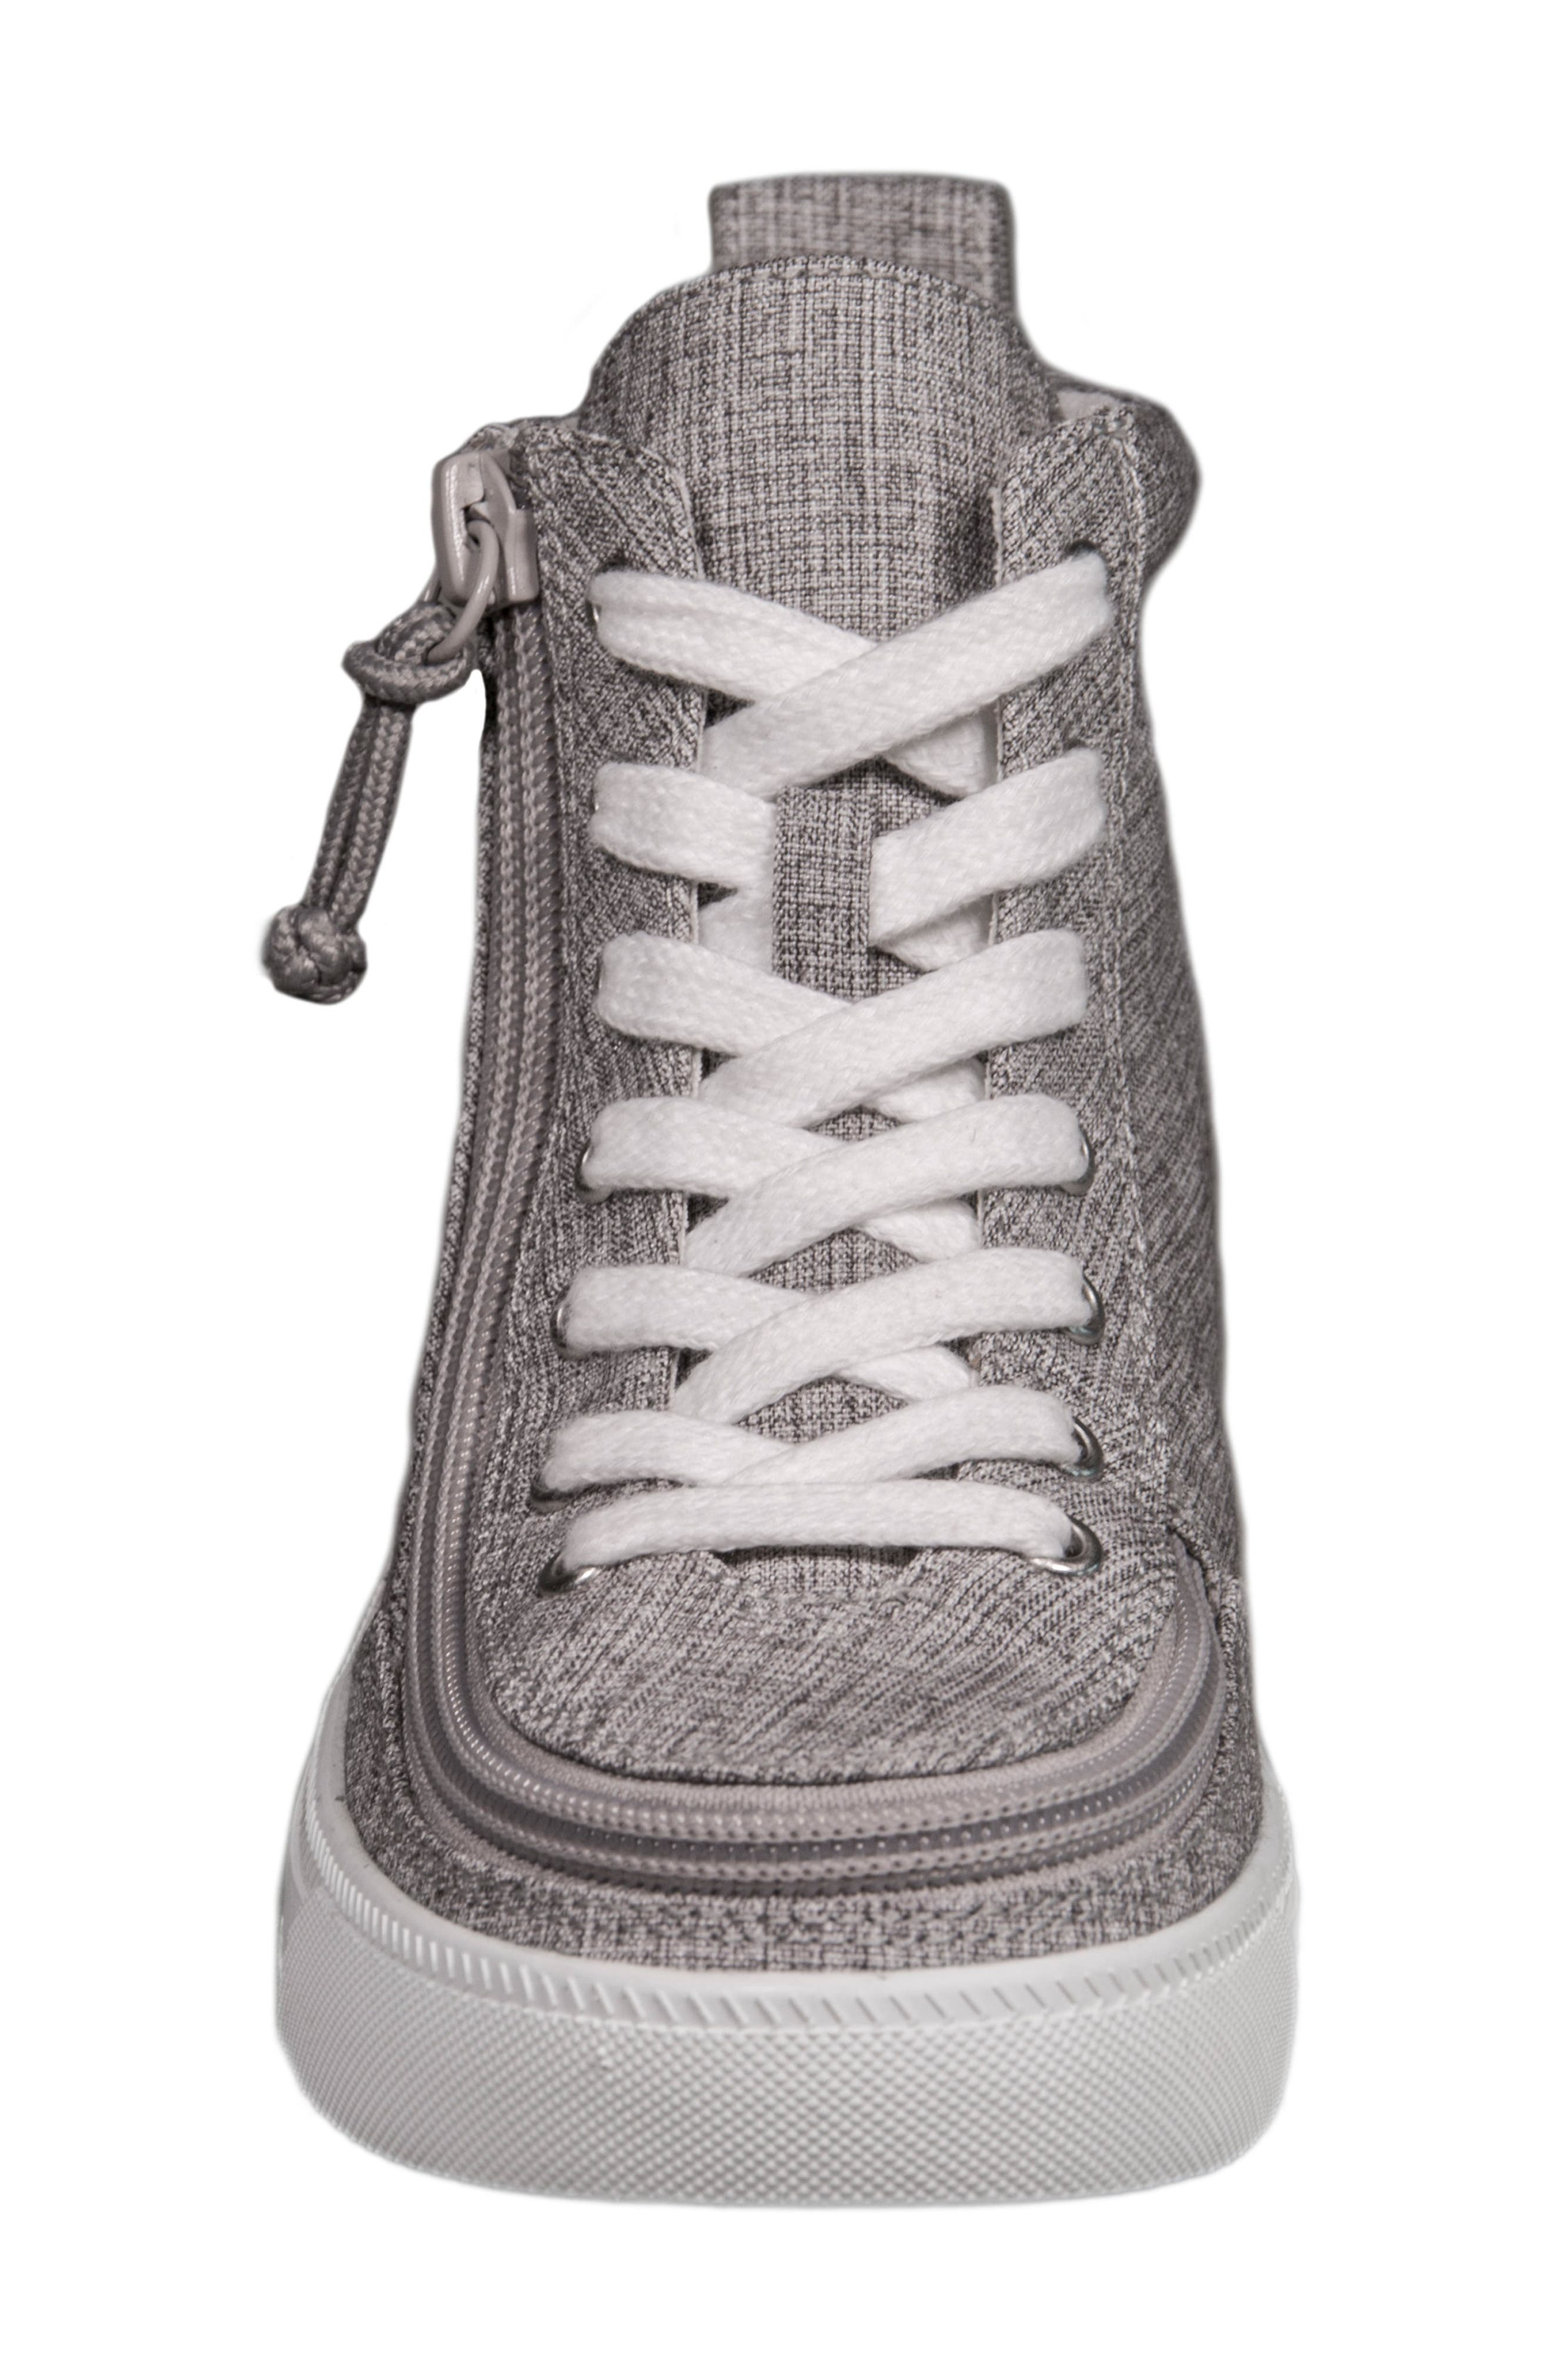 BILLY FOOTWEAR, Zip Around High Top Sneaker, Alternate thumbnail 3, color, GREY JERSEY